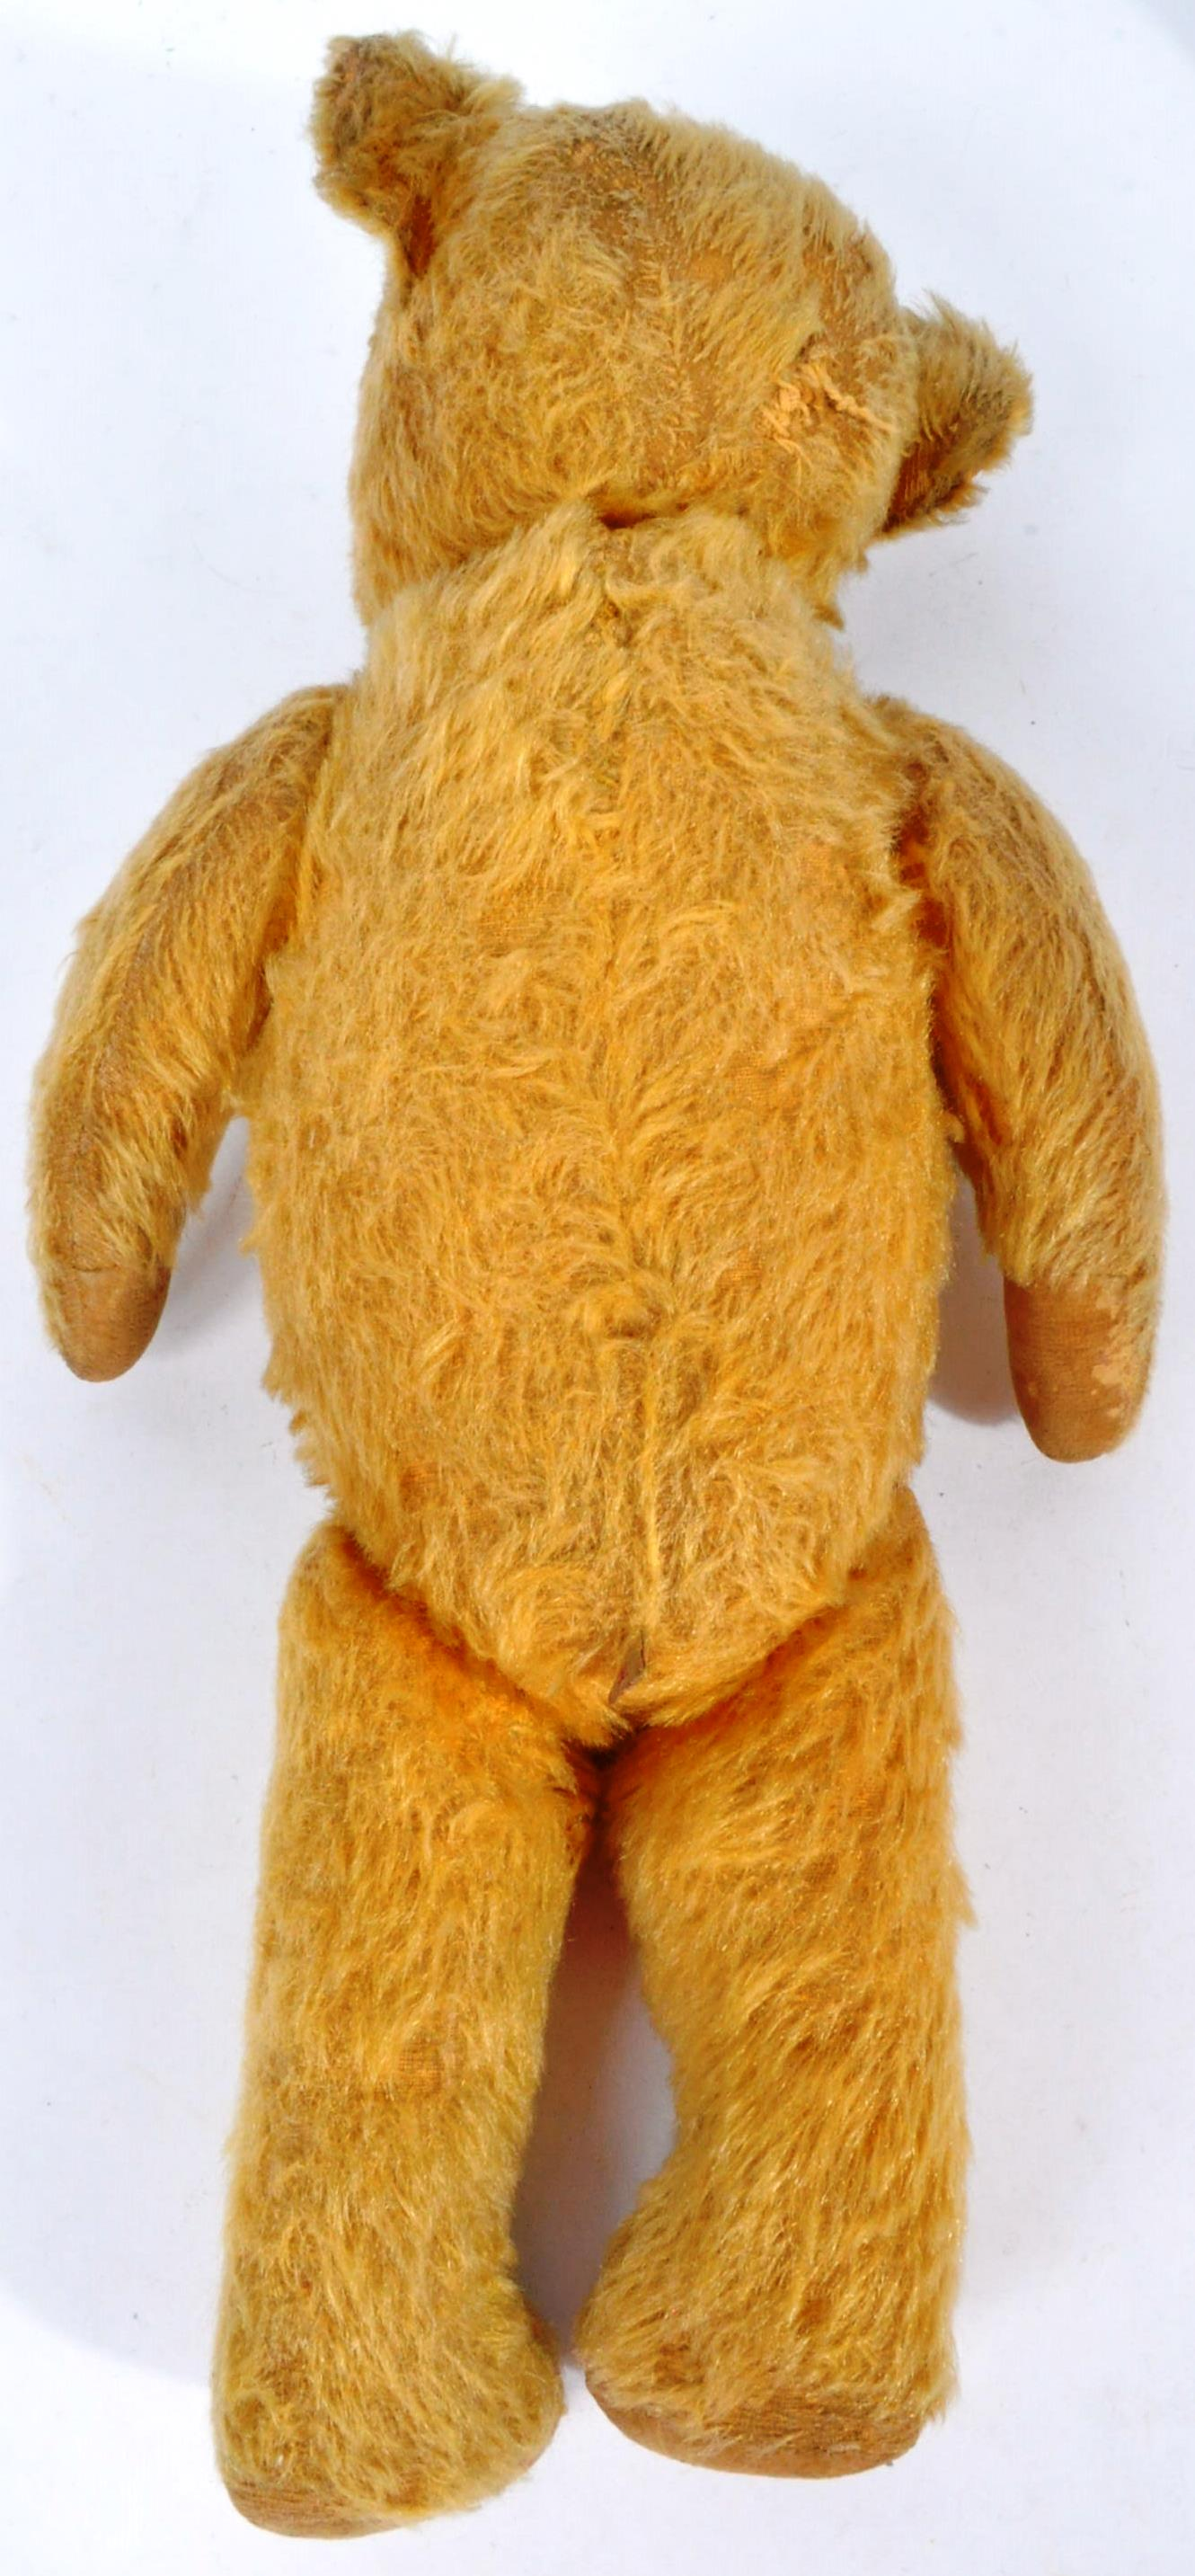 VINTAGE ENGLISH TEDDY BEAR AND GERMAN SCHUCO DOLL - Image 4 of 8